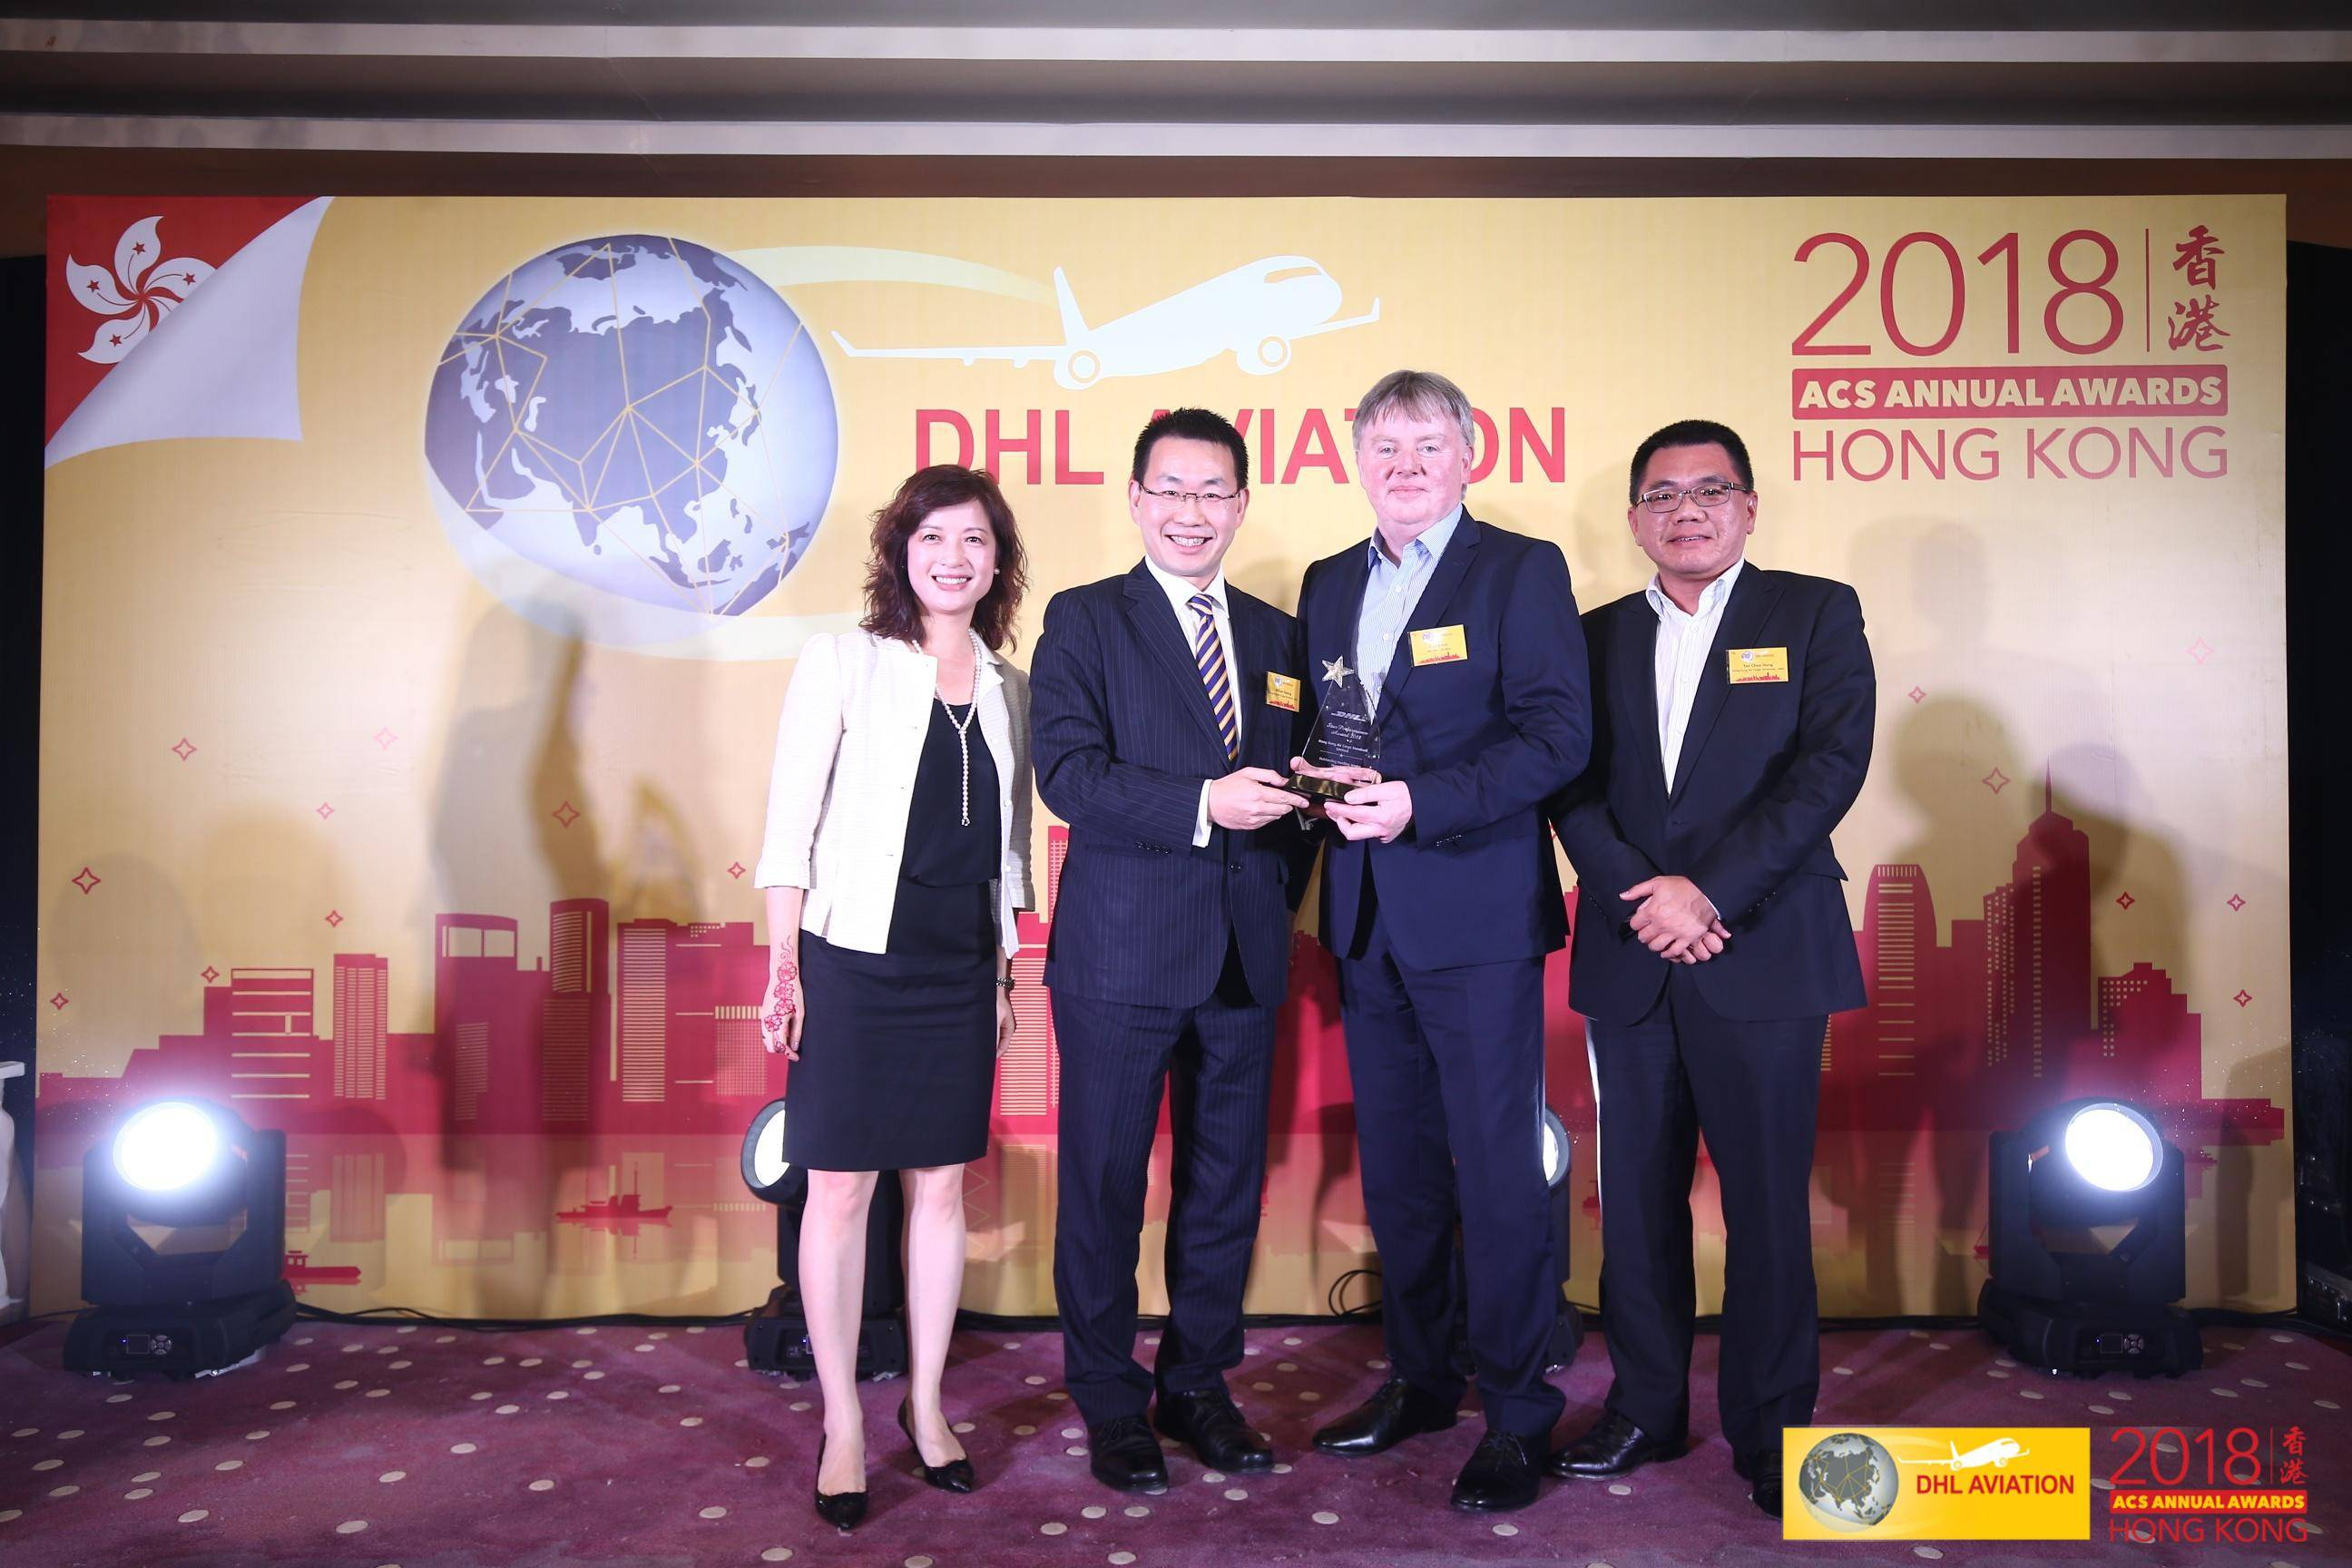 Hactl scored DHL Star Performance Award for the fifth time